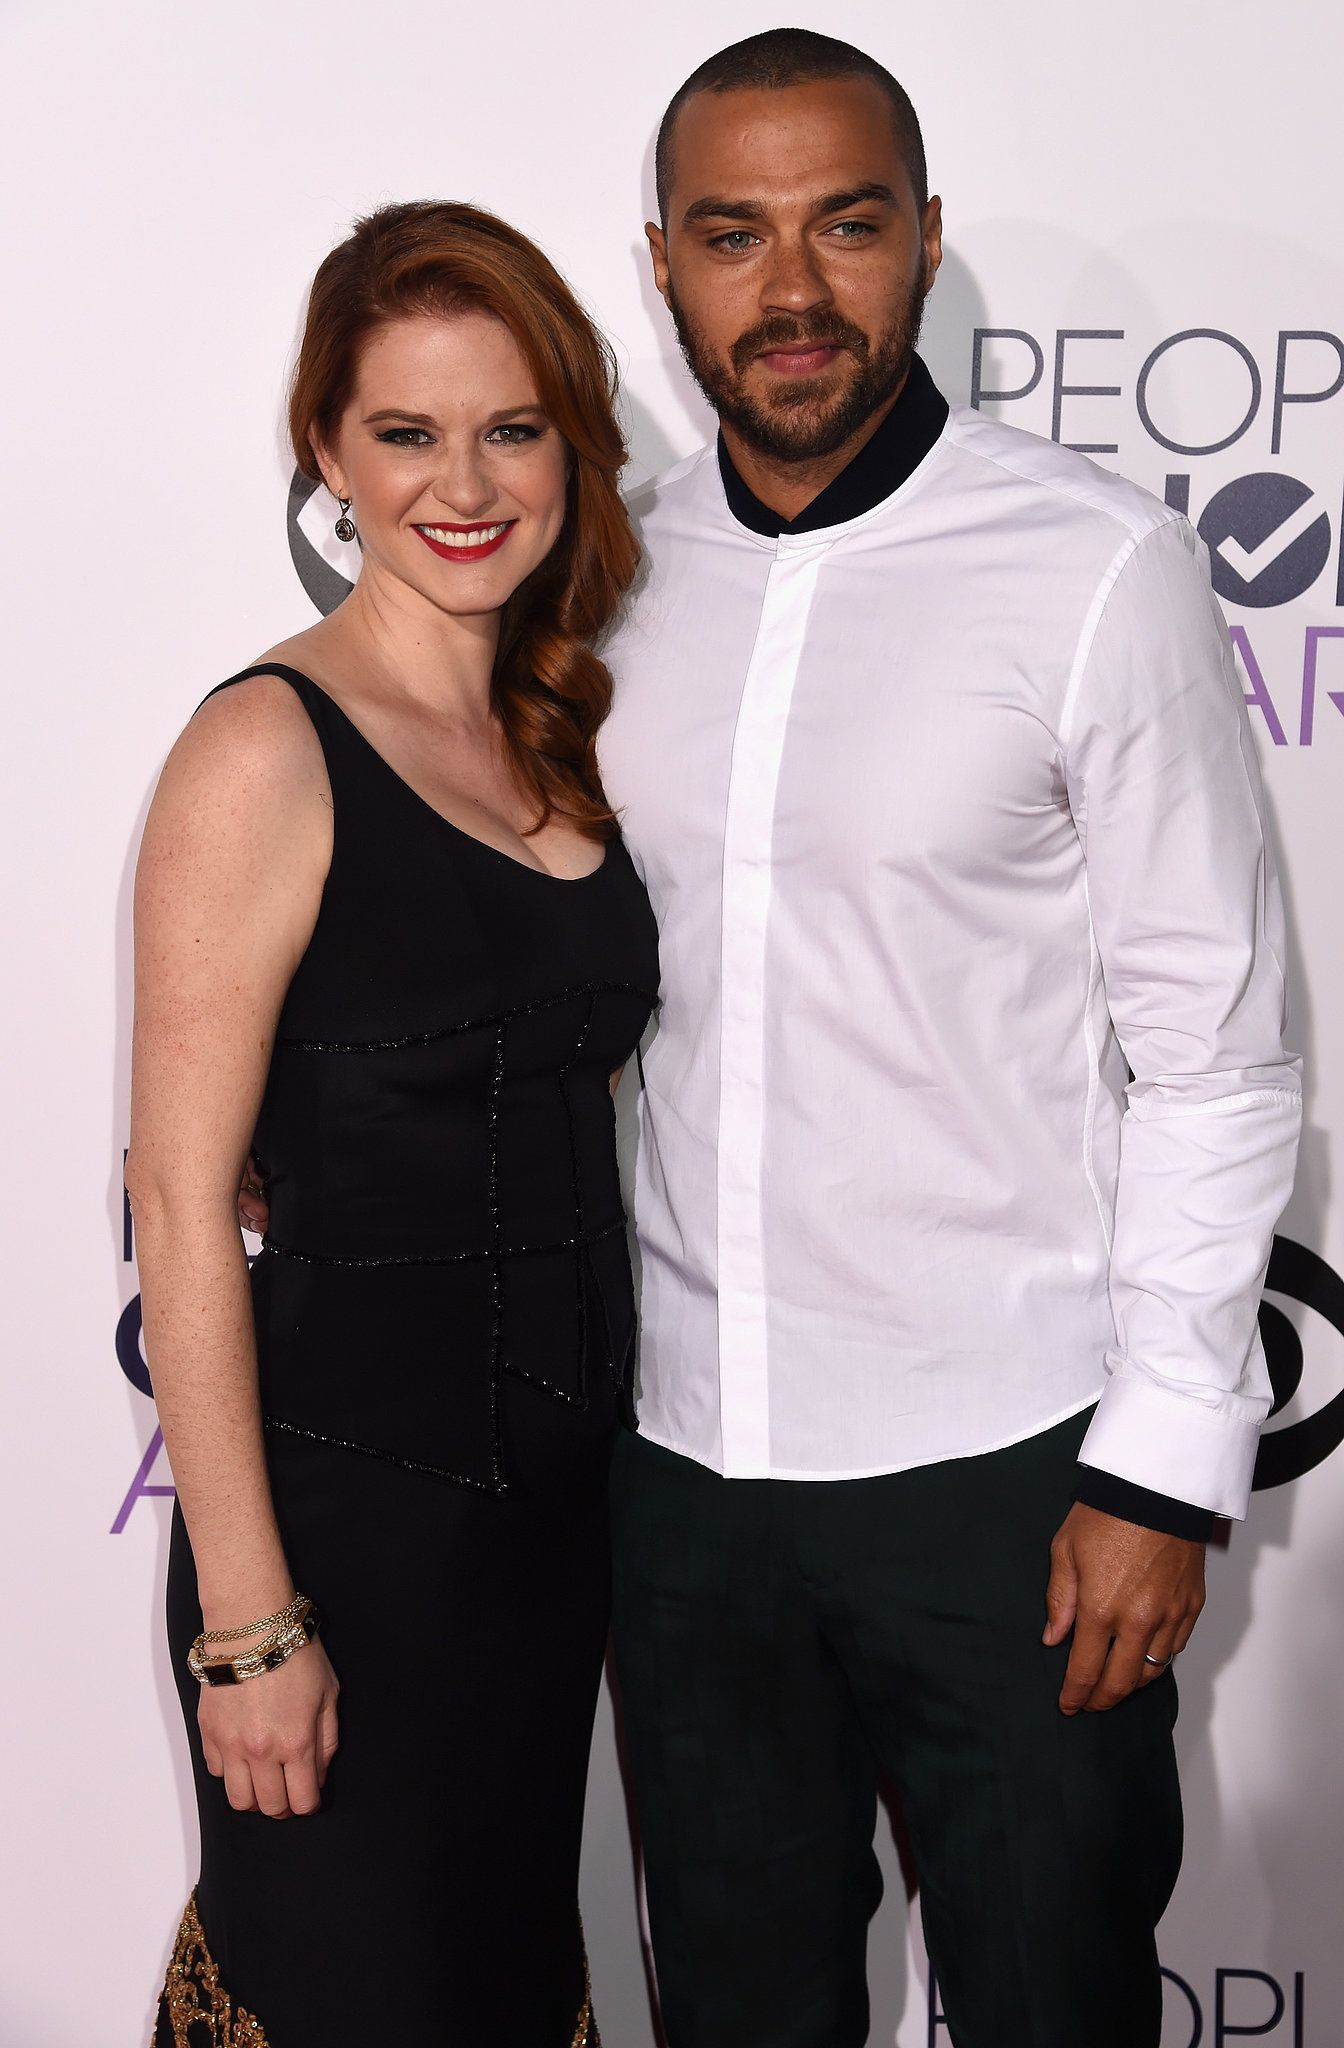 Sarah Drew and Jesse Williams | Actors | Pinterest | Jesse williams ...